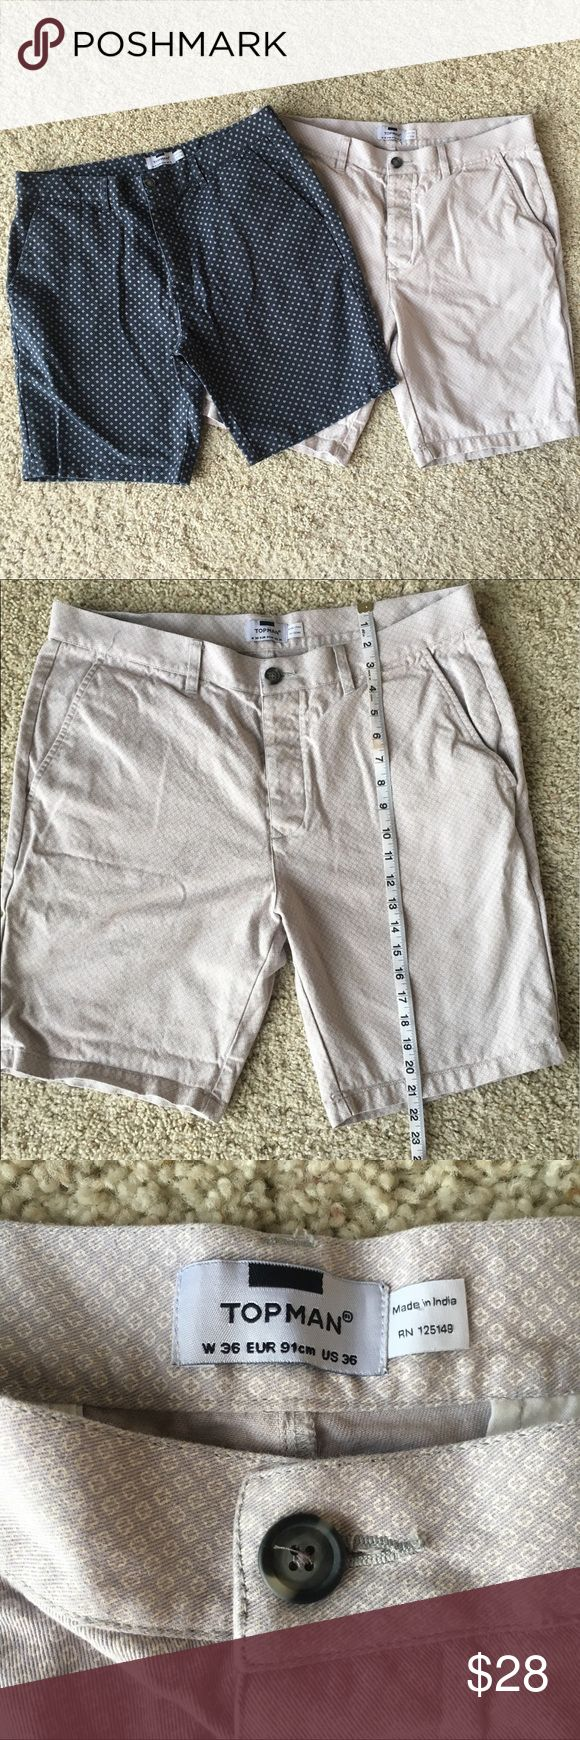 Bundle of 2 Topshop Topman Men's shorts 36 Bundle of 2 TopShop Topman shorts. Both same pattern but opposite colors. Size 36. Please see photos for measurements. Not flaws: only some fade from wash. In good condition! Topshop Shorts